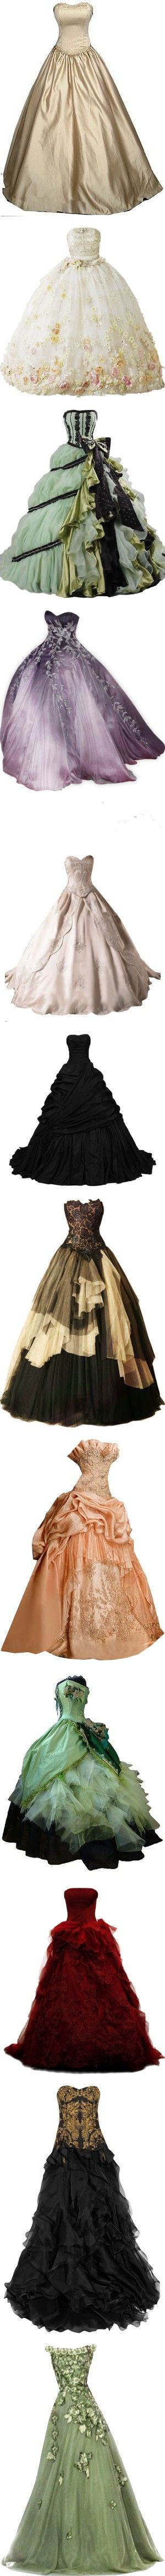 Victorian Gown 2.0 by kerstinxx on Polyvore featuring dresses, gowns, vestidos, long dresses, long brown dress, clip dress, brown dress, wedding dresses, long green evening dress and green ball gown